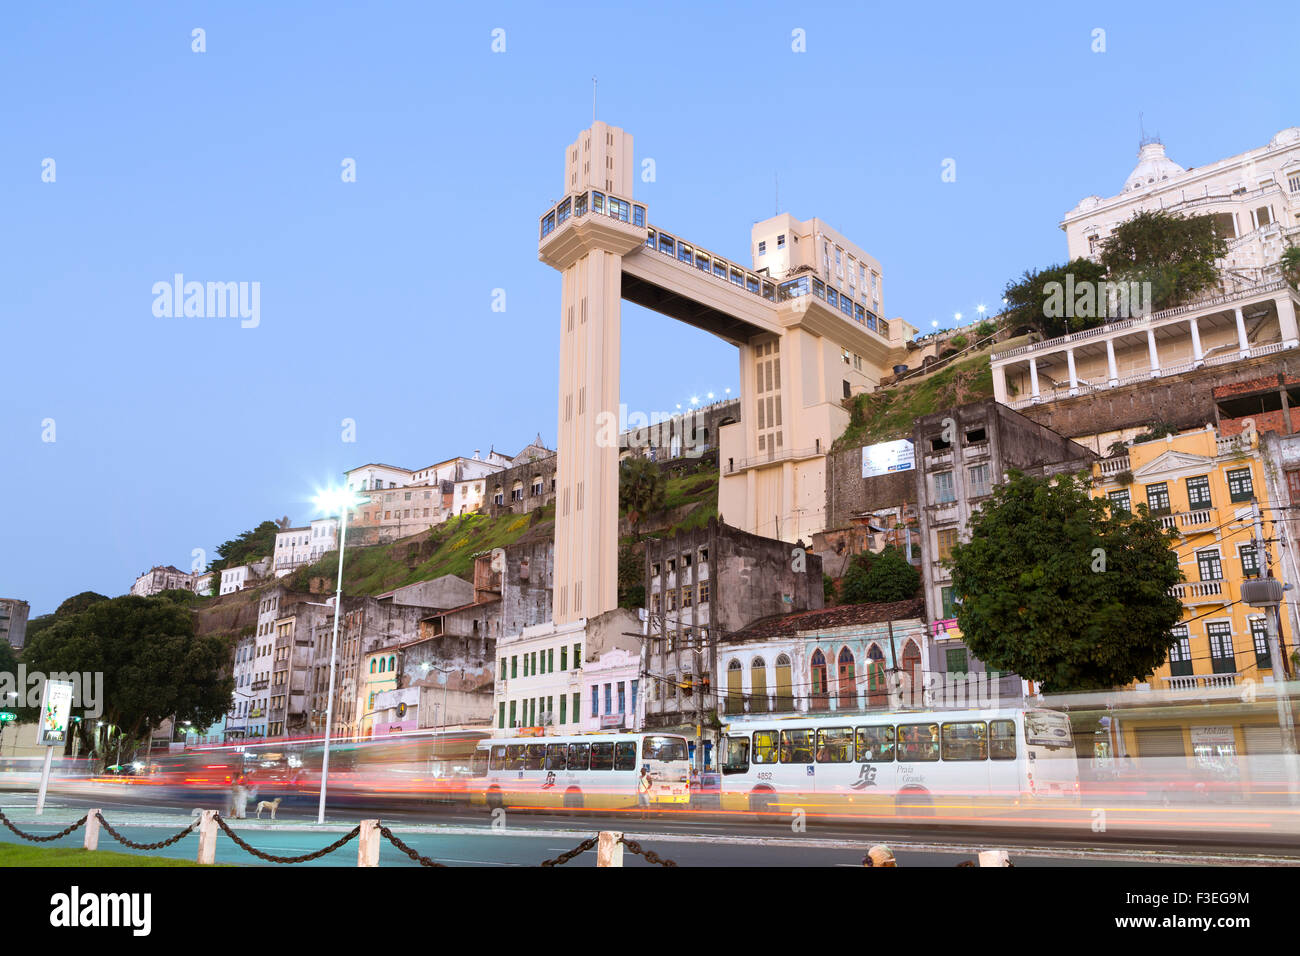 The Lacerda elevator (lift) in Salvador, Bahia, Brazil - Stock Image